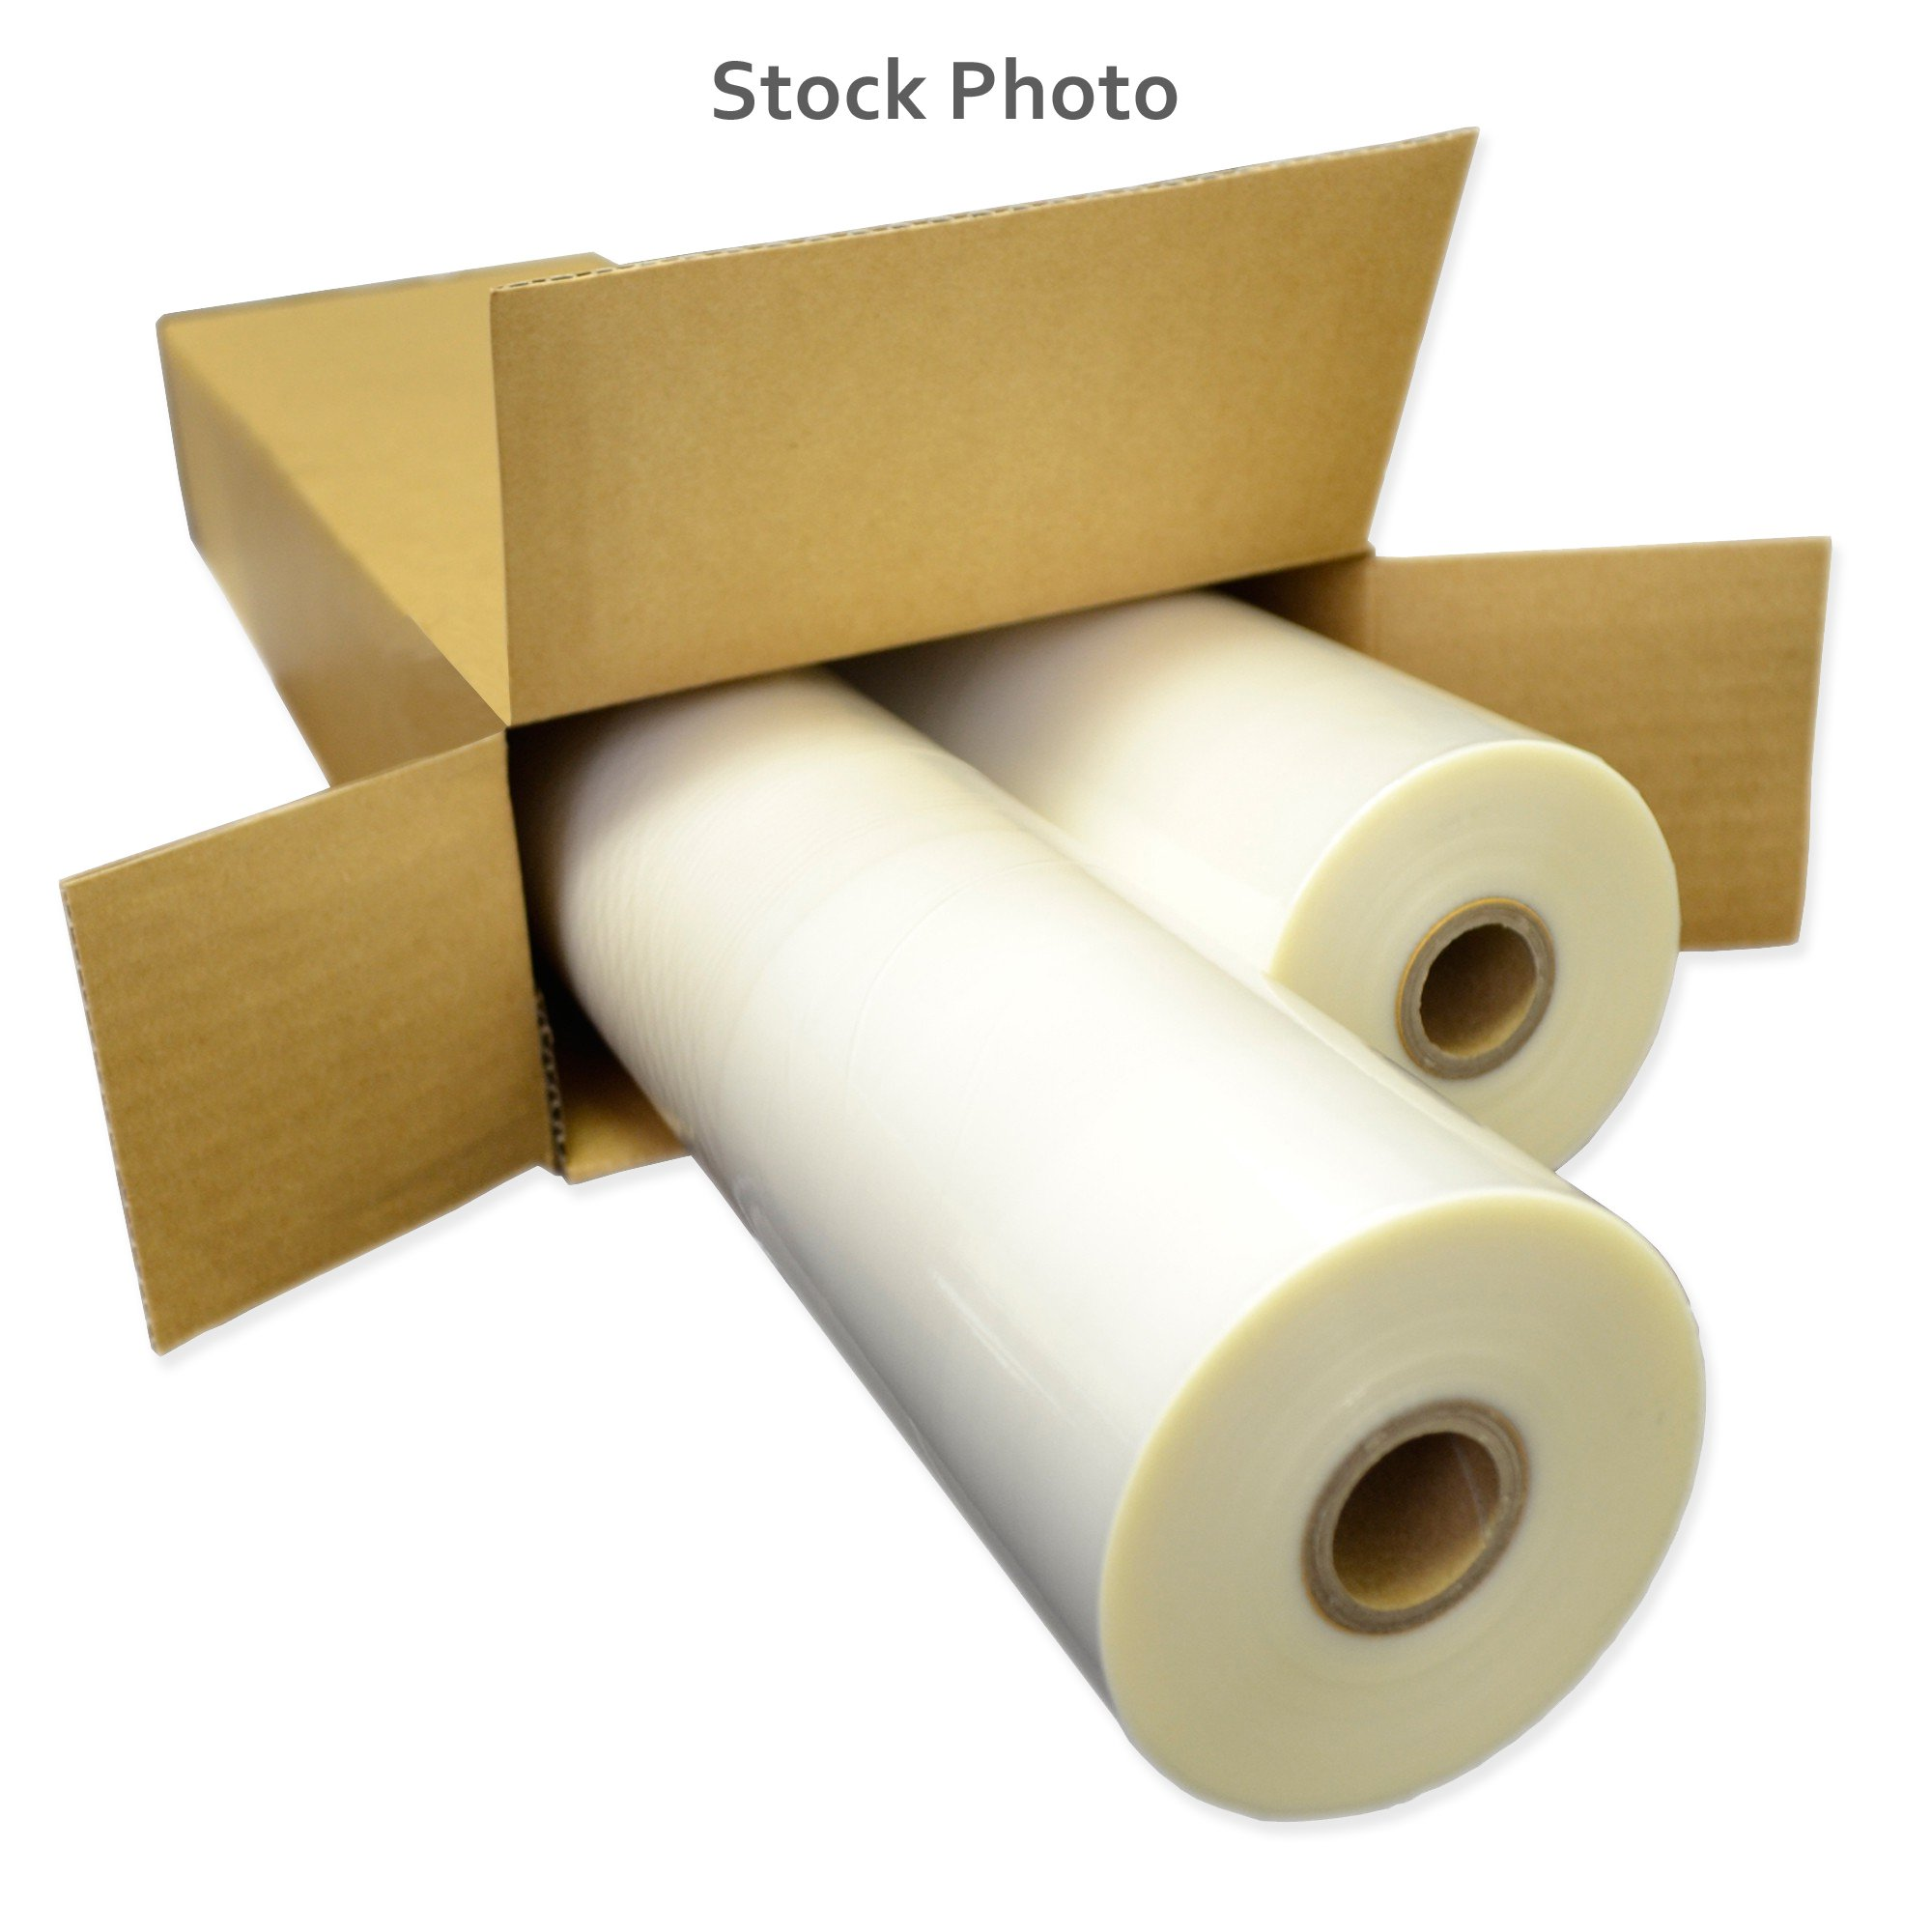 """25"""" Clear 5 Mil Thermal Roll Lamination Film (Quantity 2) w/ 1"""" Core from ABC Office"""